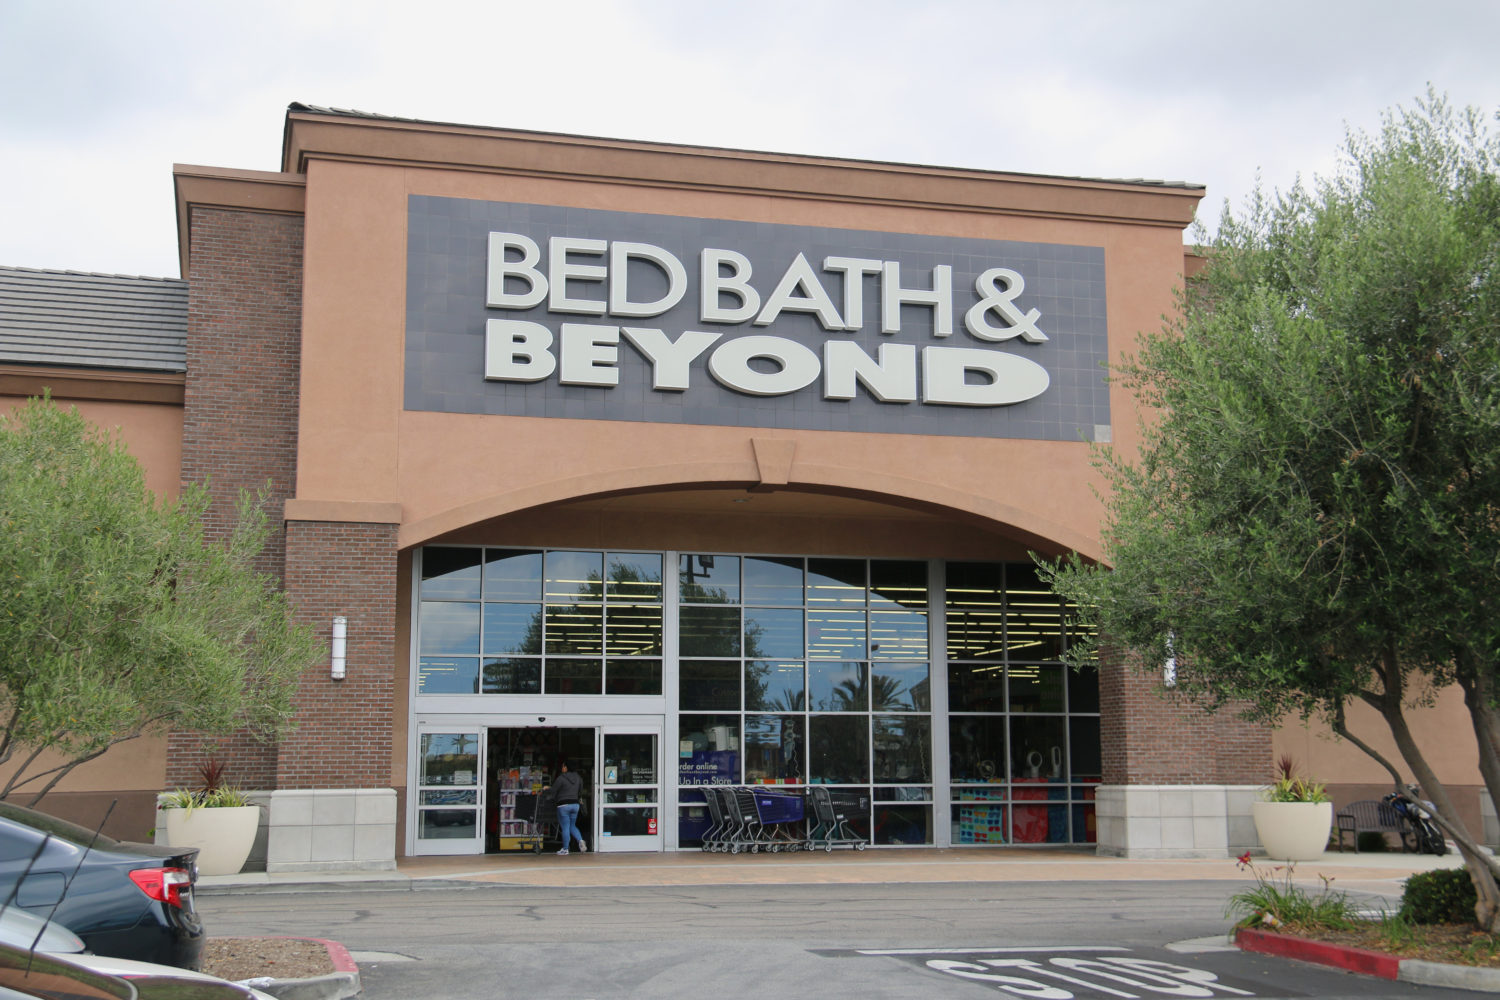 Bed Bath & Beyond's Bridal Registry (Wedding) and Gift Registry has a fantastic selection, expert consultants and on-line wedding planning tools. Make your wedding registry a truly great experience. Register in-store or on-line at fiestate.ml